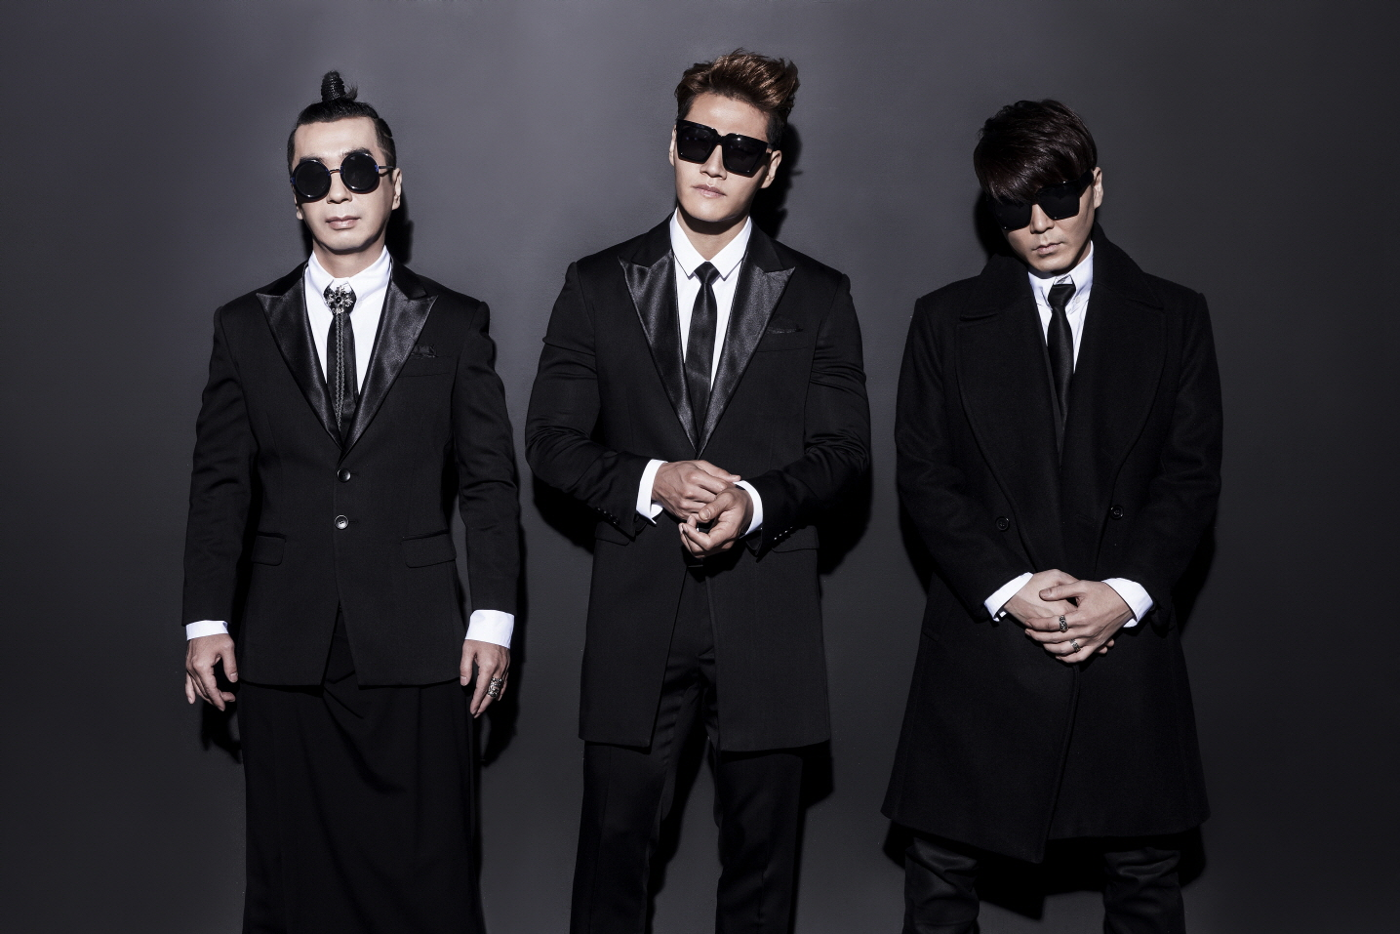 Turbo's Kim Jung Nam Expresses Regret at the Group's Initial Disbandment